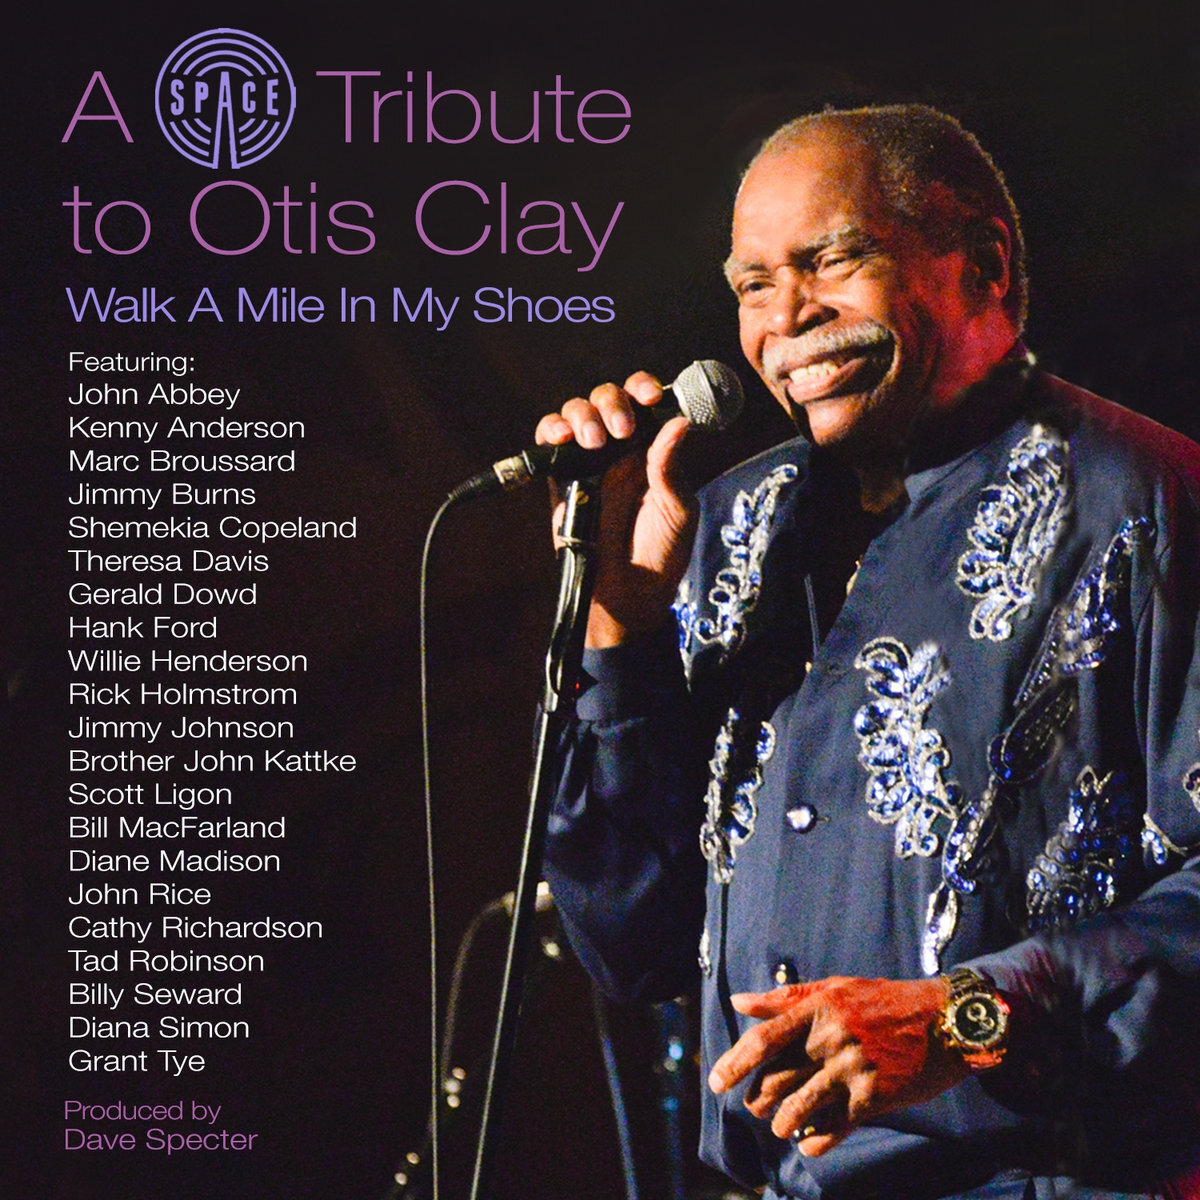 WALK A MILE IN MY SHOES - Otis Clay graced the stage at SPACE many times over the years, performing a number of unforgettable shows with his wonderful stage presence, deep soul intensity and great bands. He passed away suddenly in January 2016 and we've been working hard at the SPACE recording studios this year on a tribute in his memory. The tribute single features 21 musicians including many who performed and recorded with Otis.